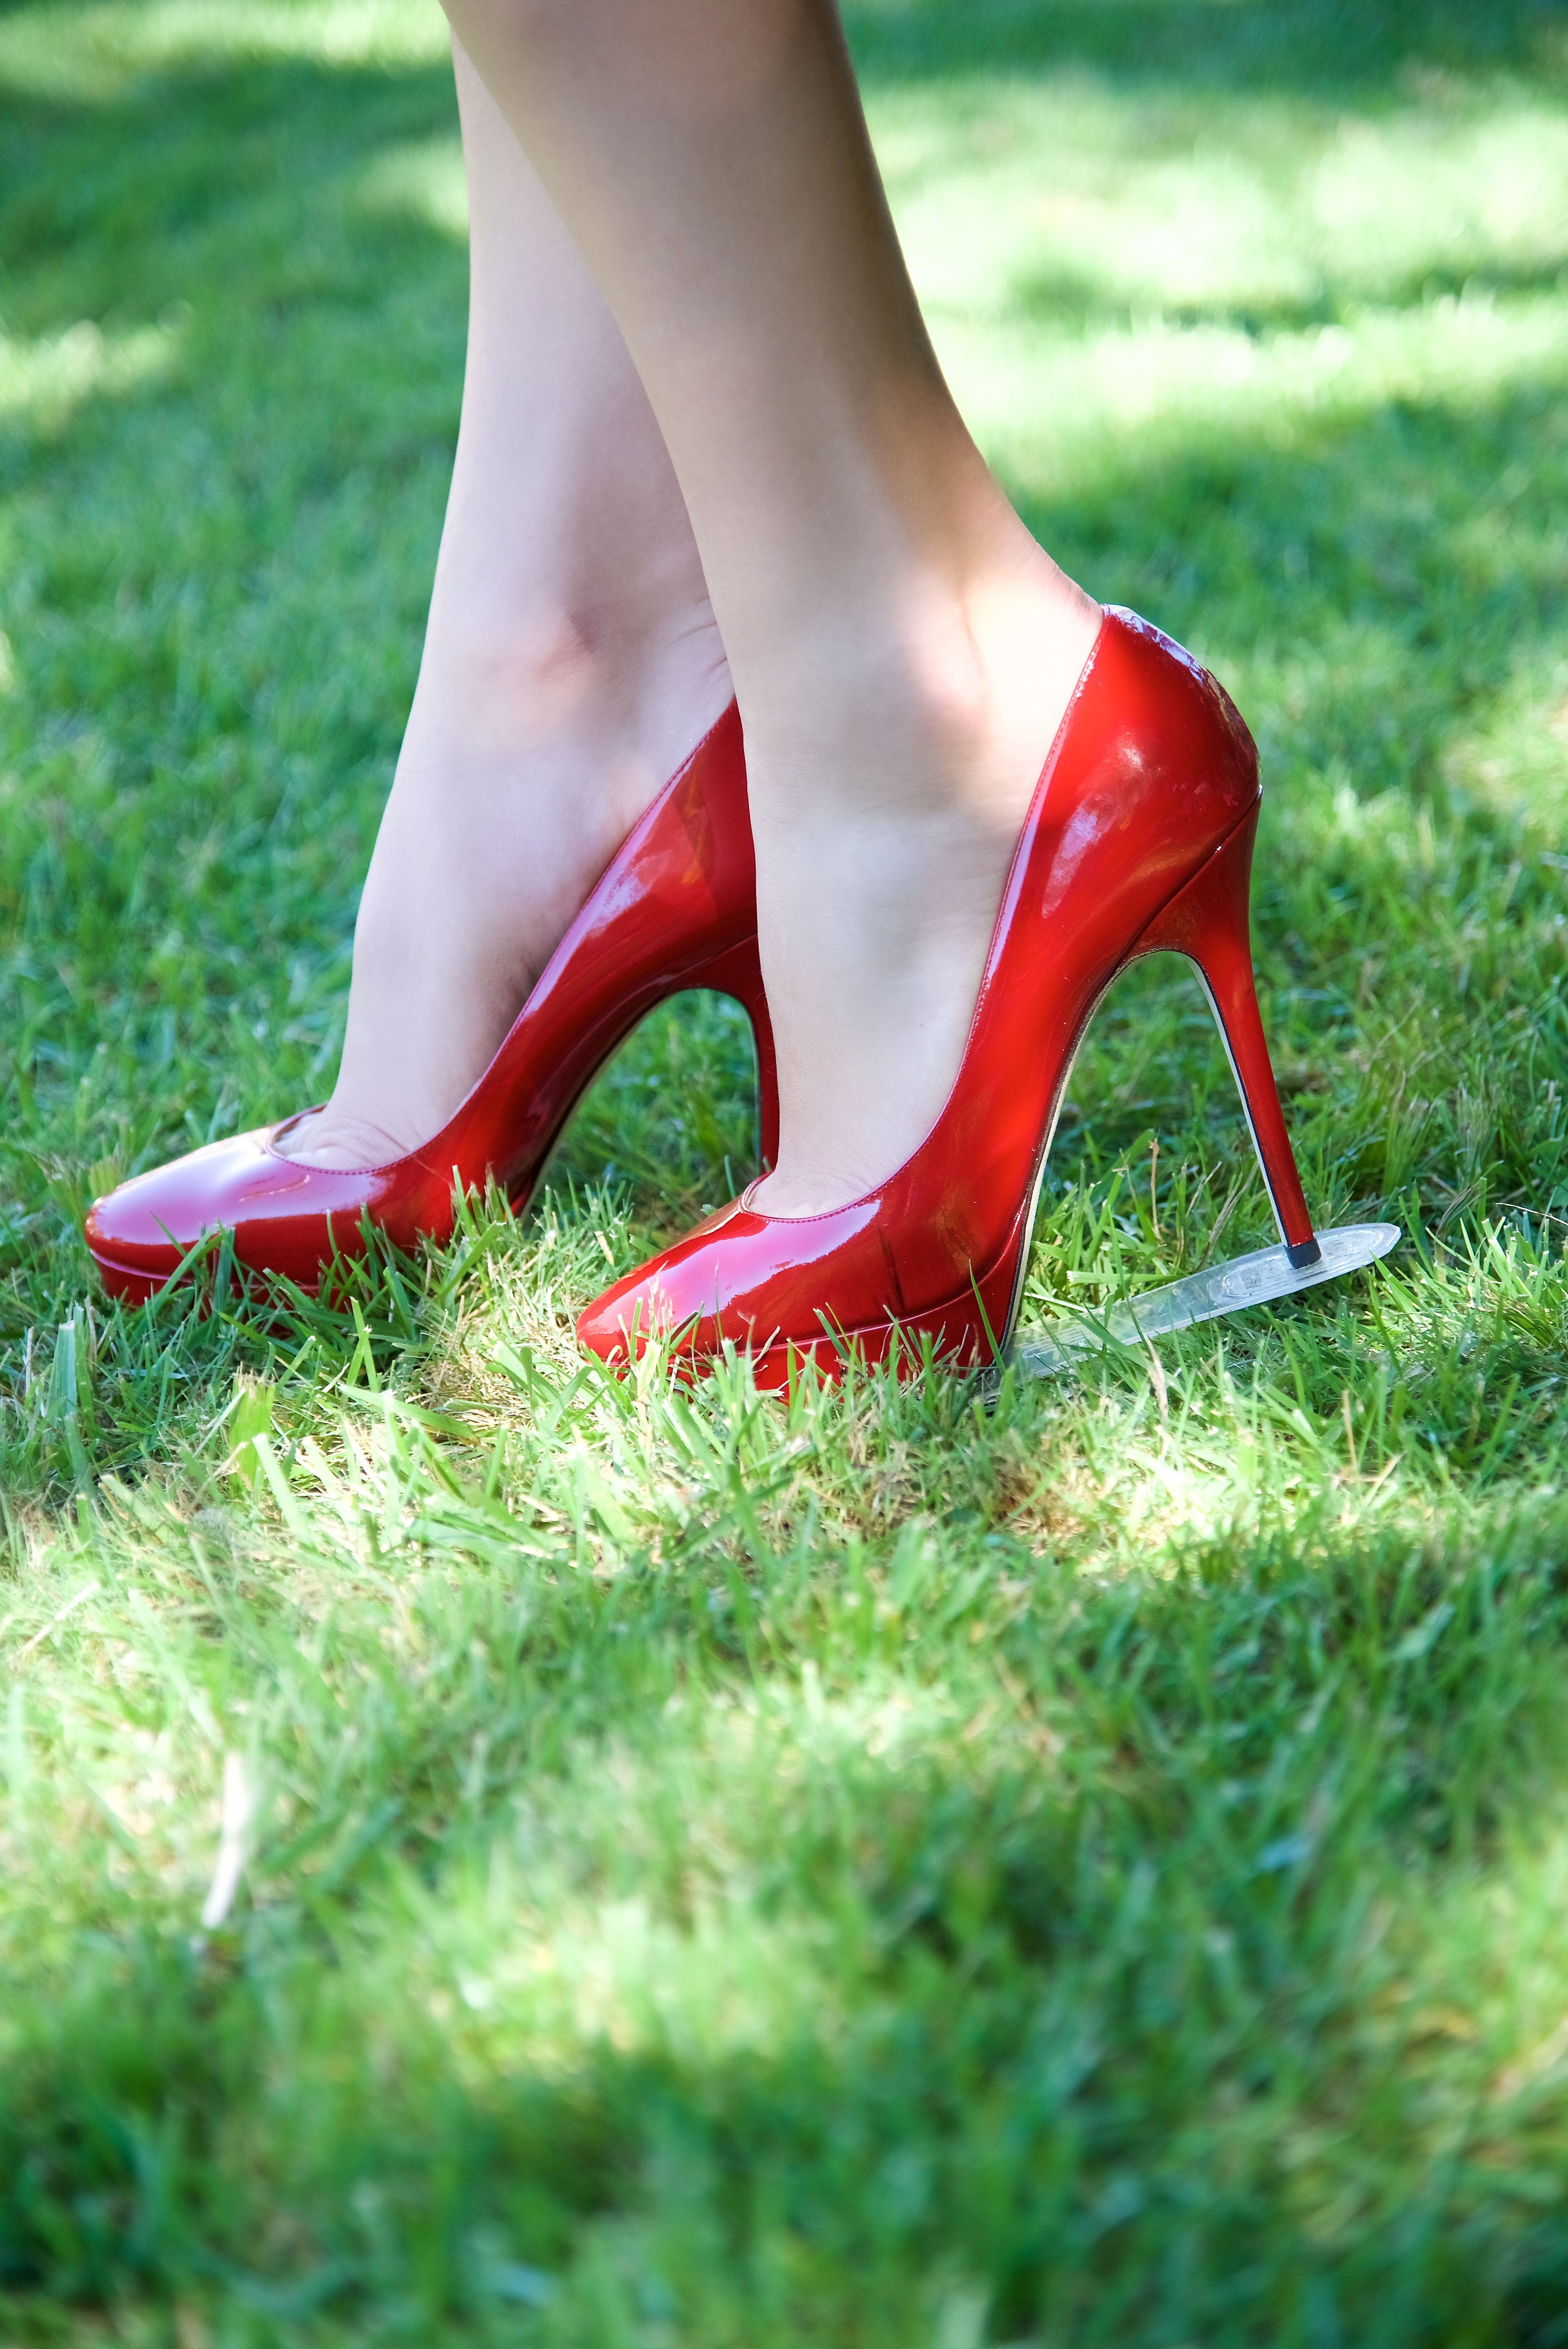 ab3f6d004ff3 Protect your heels from grass with Grasswalkers. Our heel stopper  technology lets you wear your favorite heels at outdoor events without  risking to ruin ...